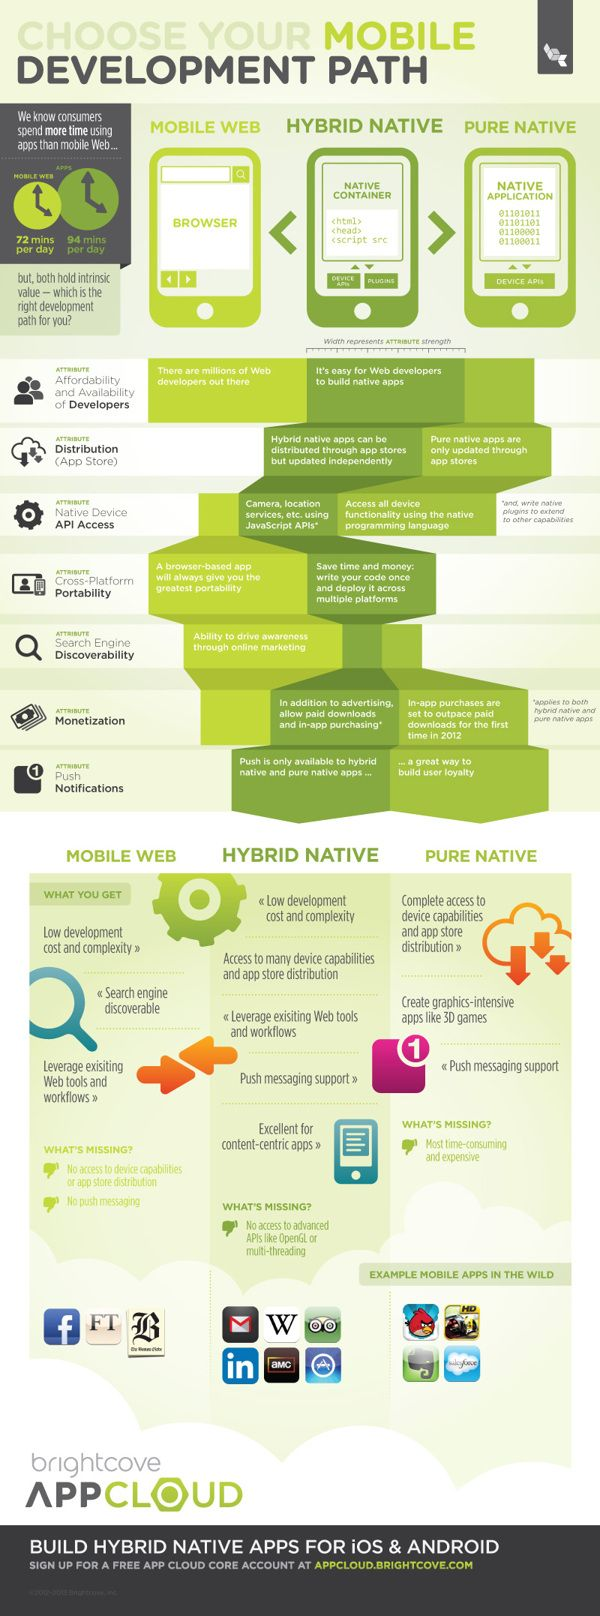 Choose your mobile development path #infographic